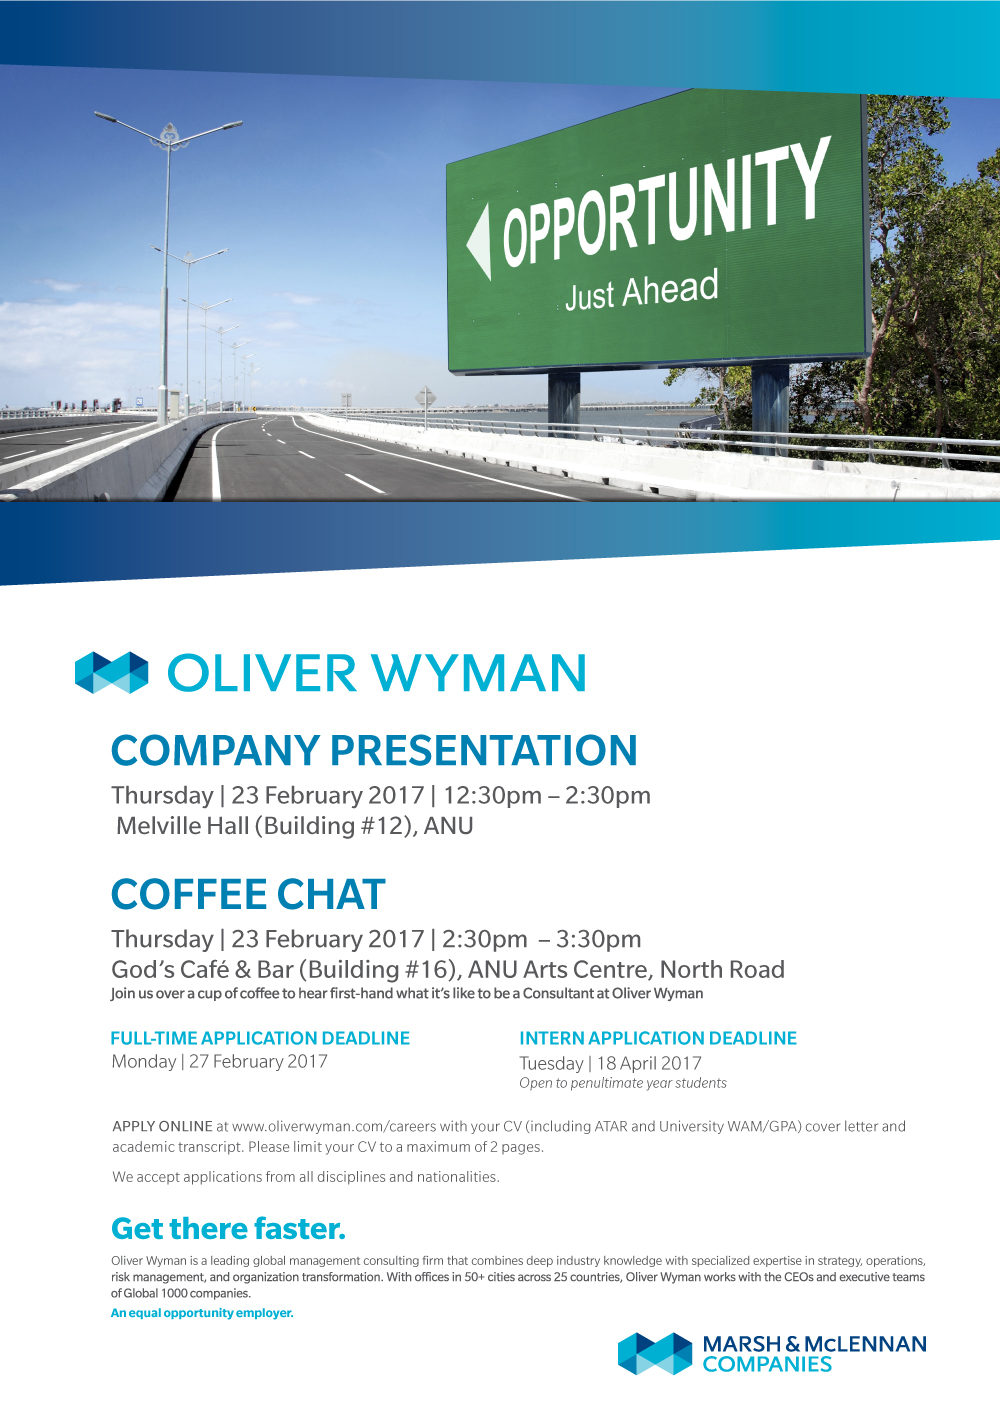 Oliver Wyman Company Presentation and Coffee Chat